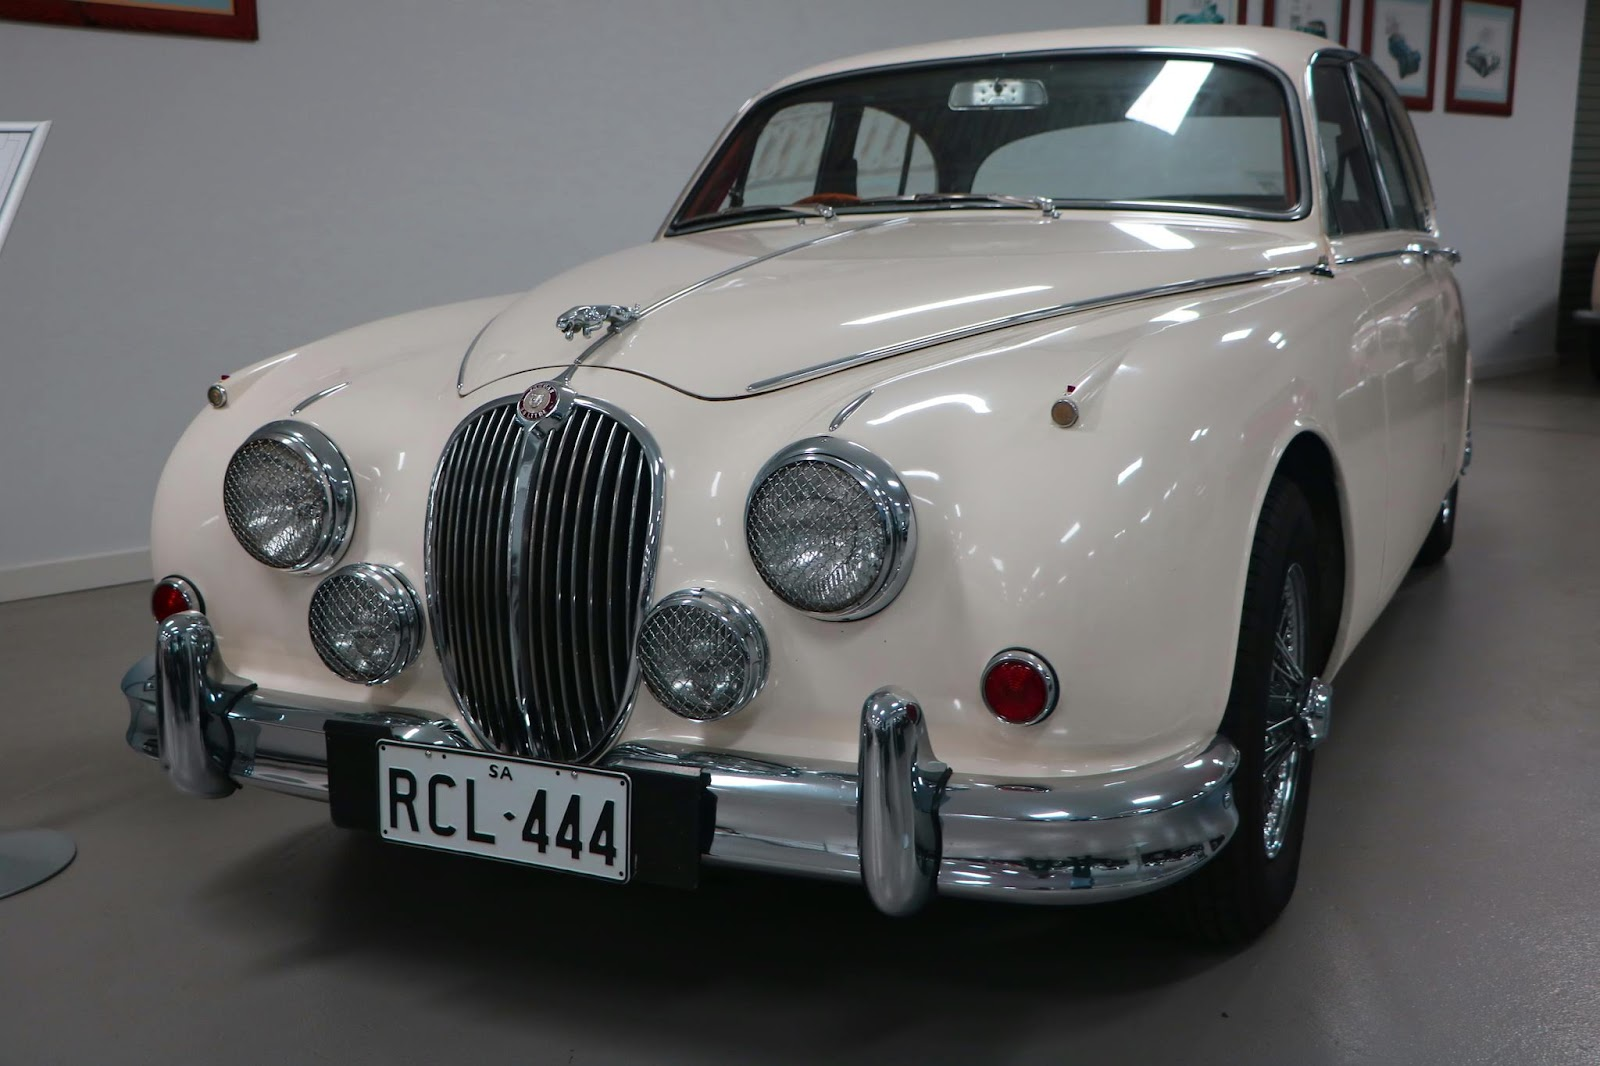 Carl_Lindner_Collection - 1965 Jaguar Mk II 3.8 Sedan 08.JPG